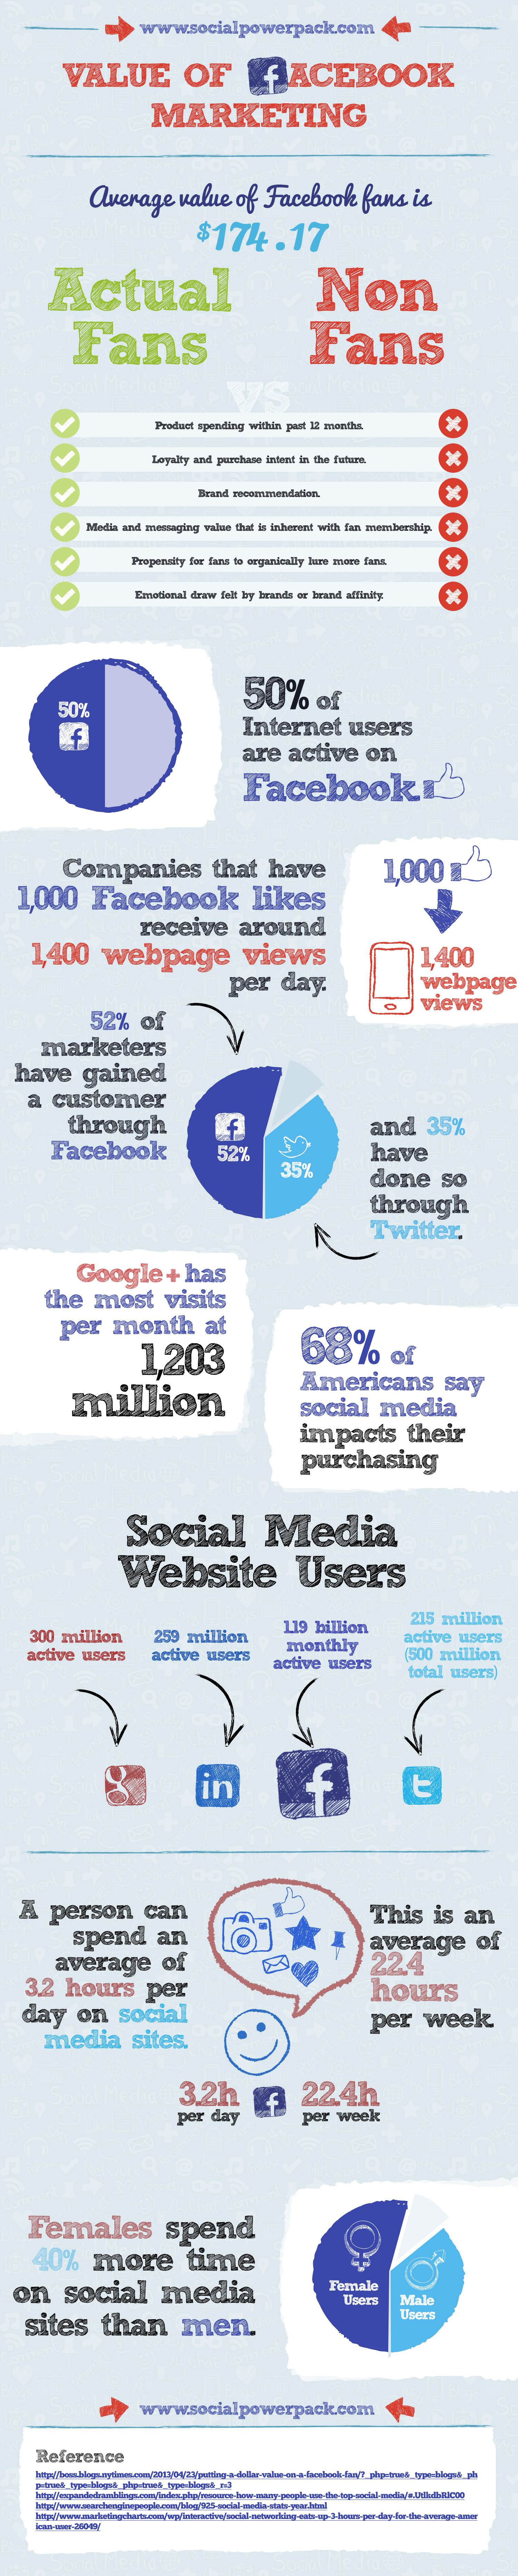 Value of Facebook Marketing [infographic] ~ Visualistan